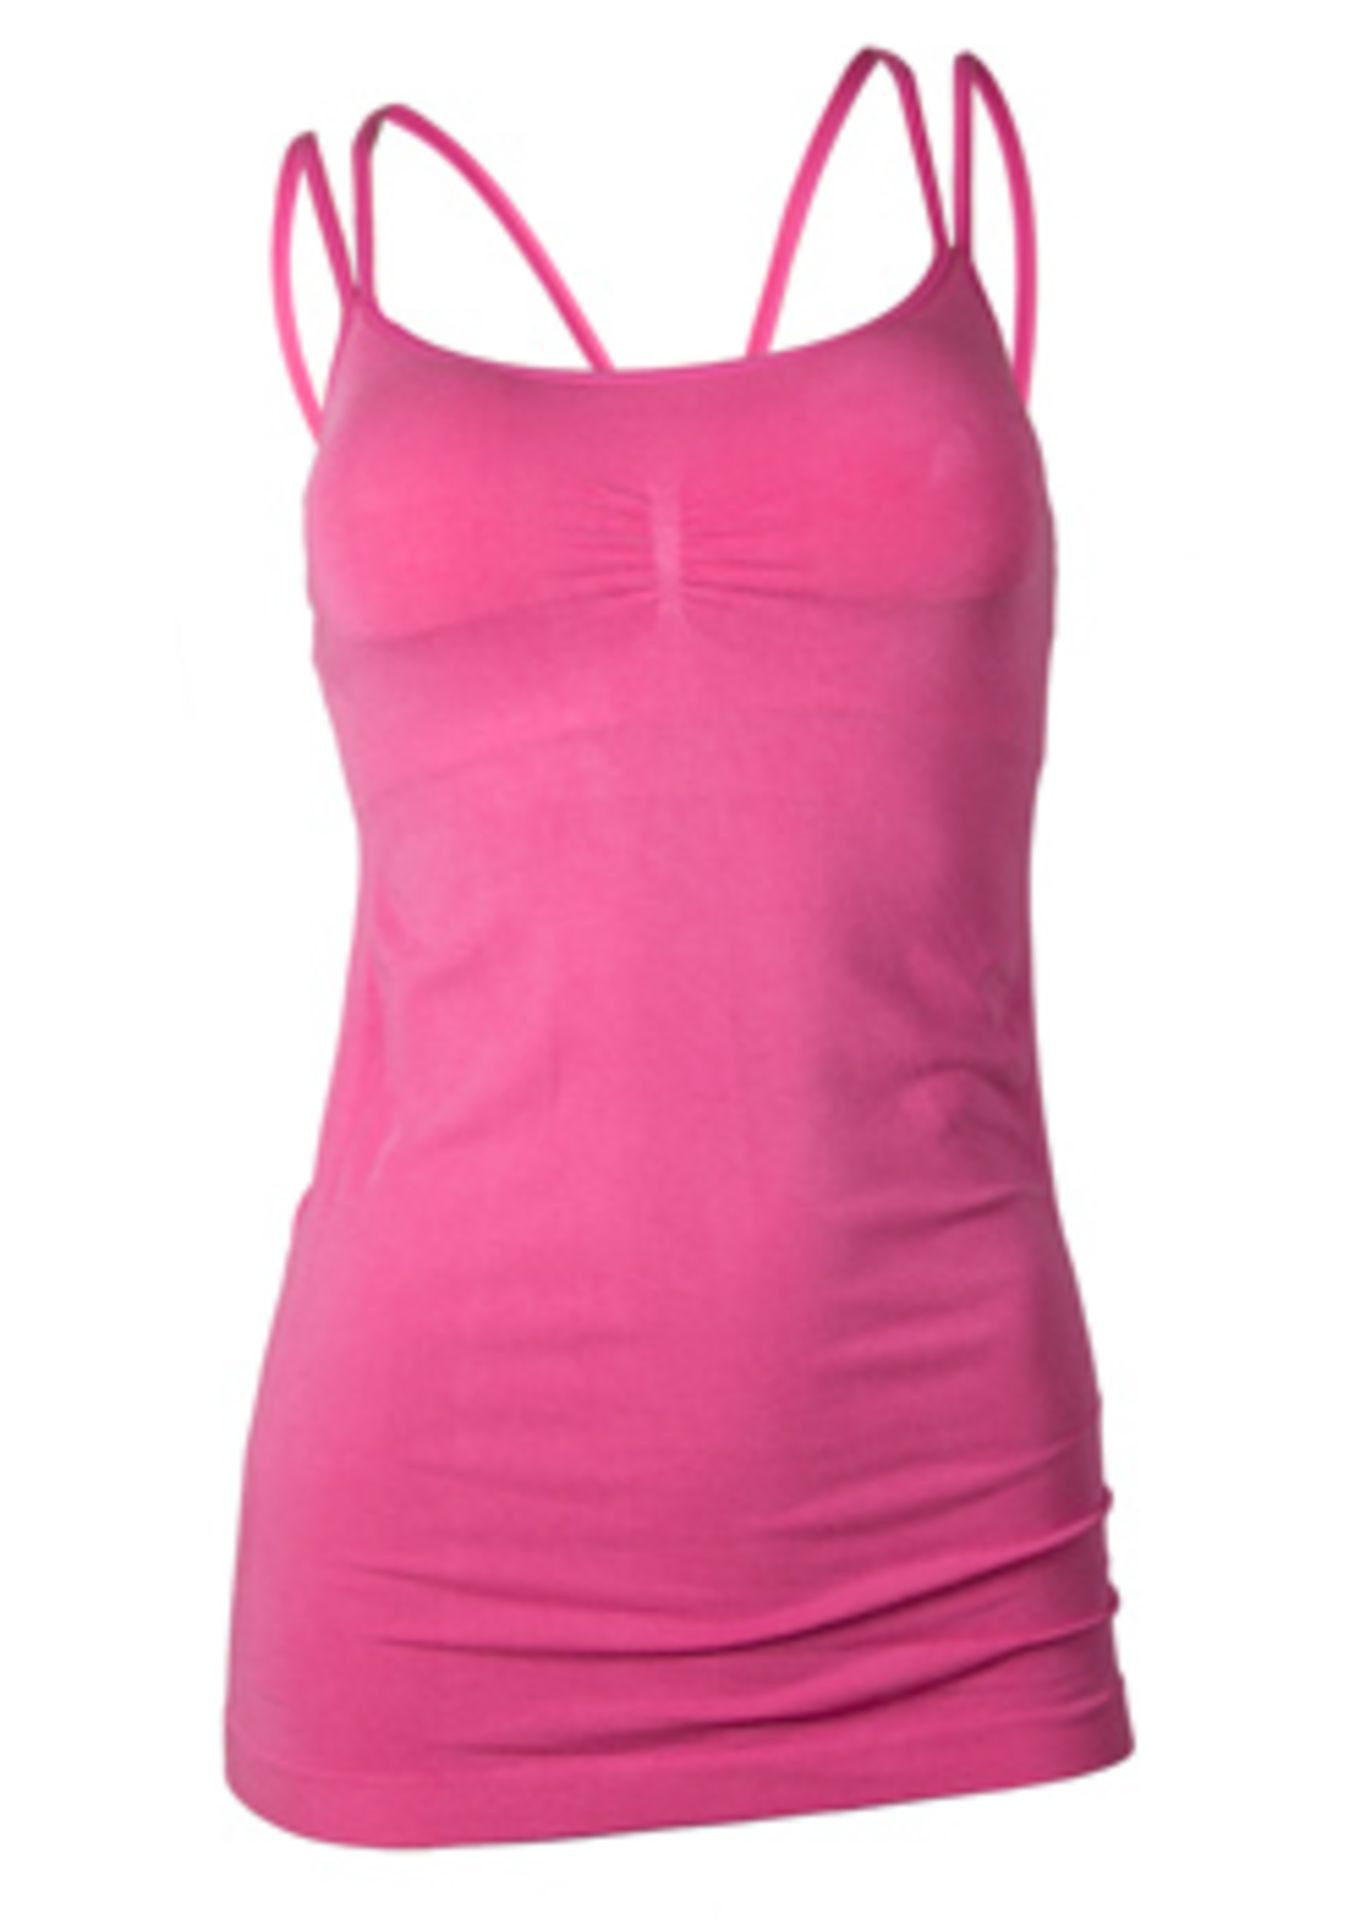 3 x Bamboo Yoga Flow Tops w/ Padded Bra | XS - Image 3 of 4